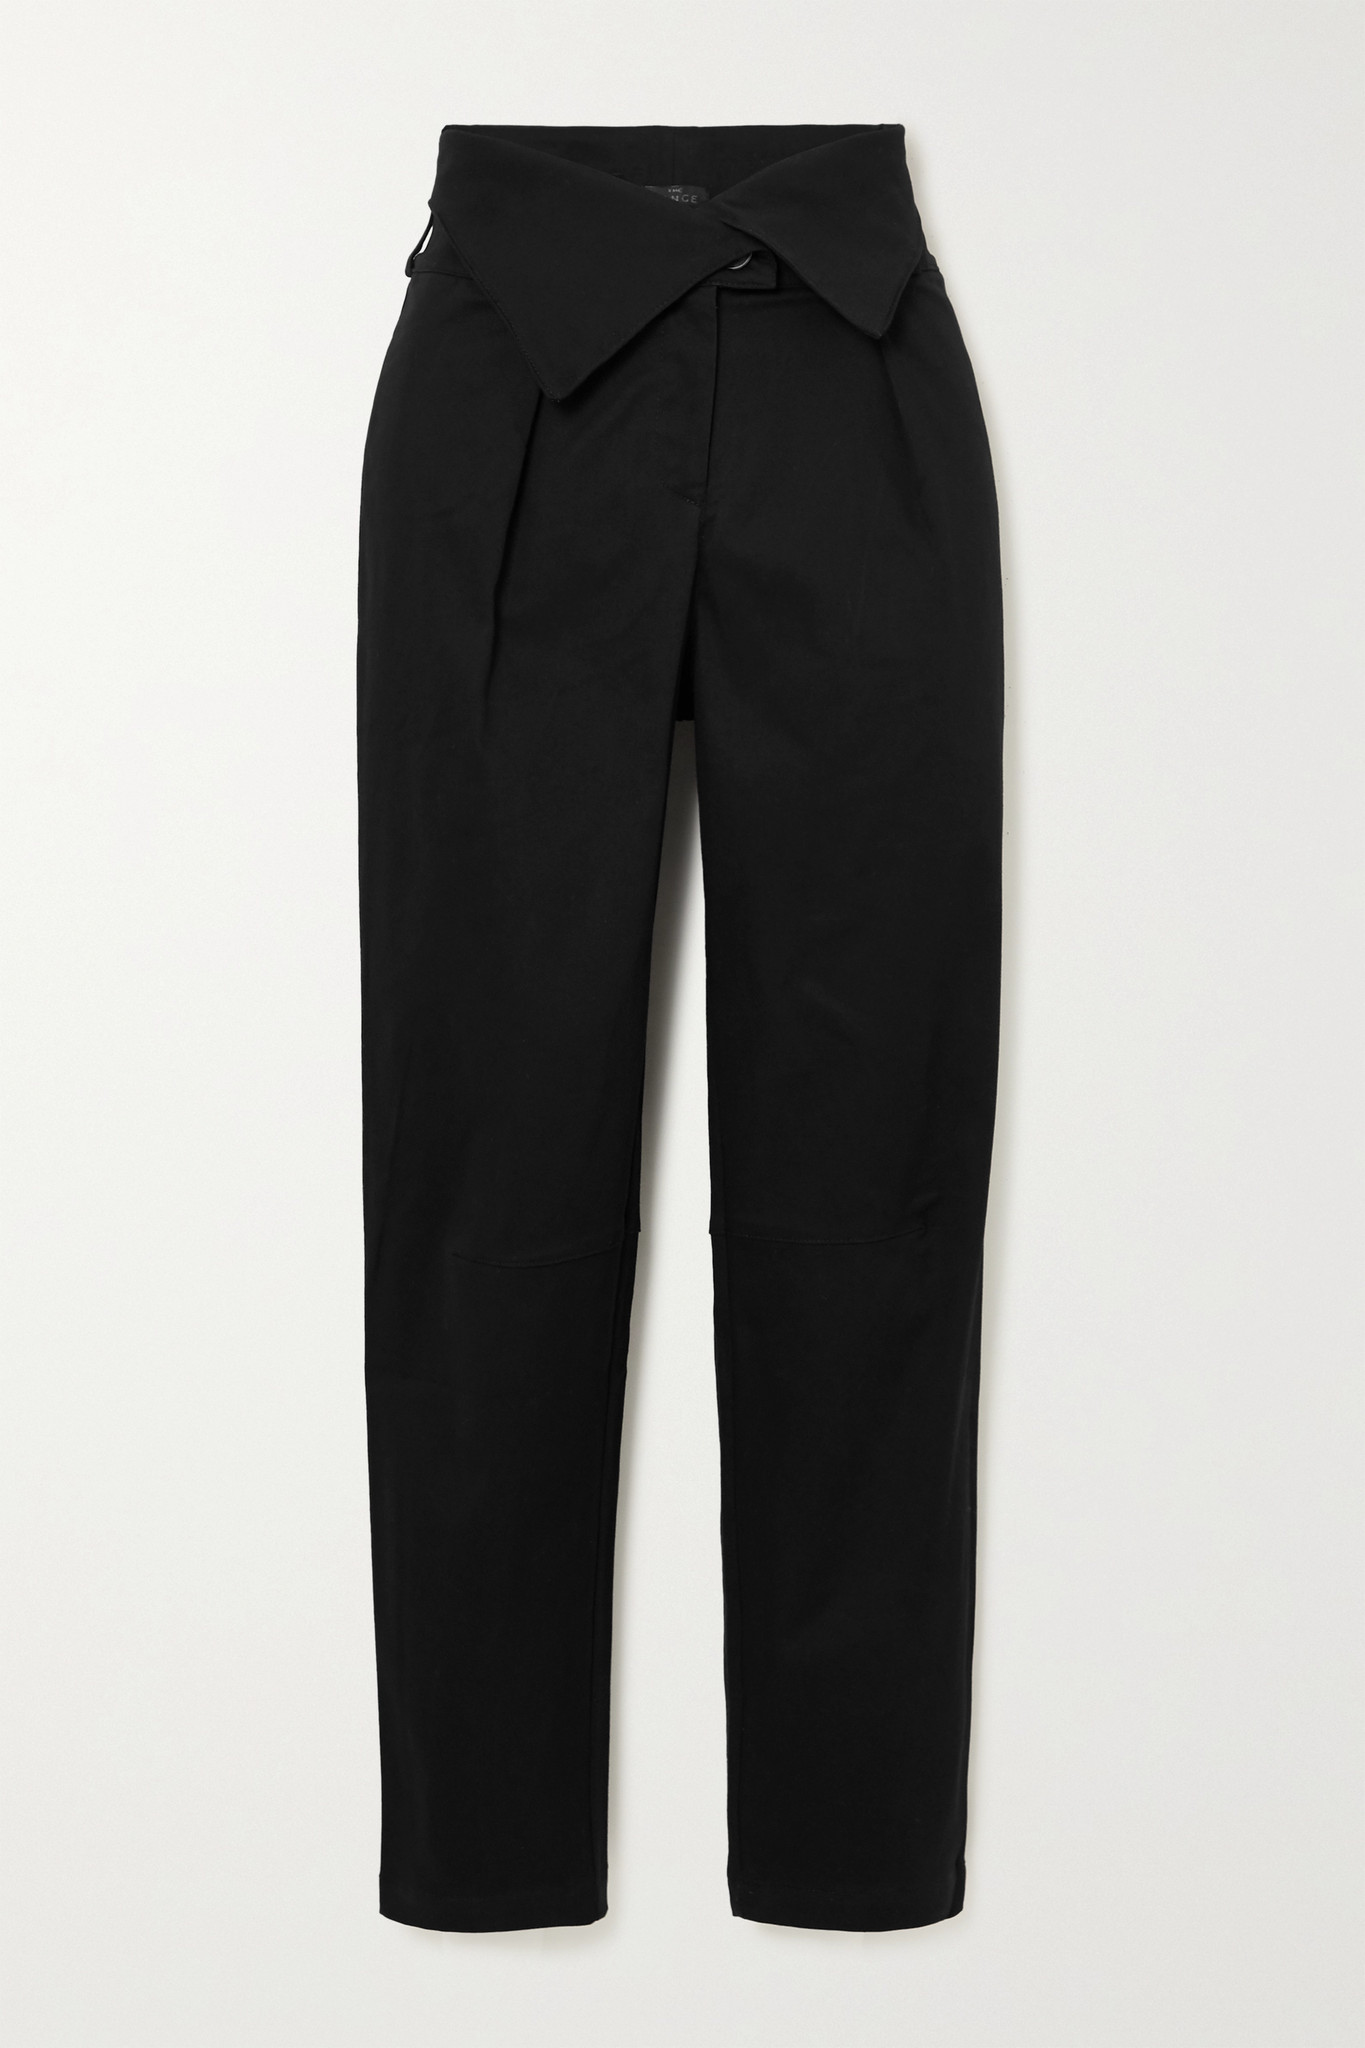 THE RANGE - Stretch-cotton Twill Tapered Pants - Black - small